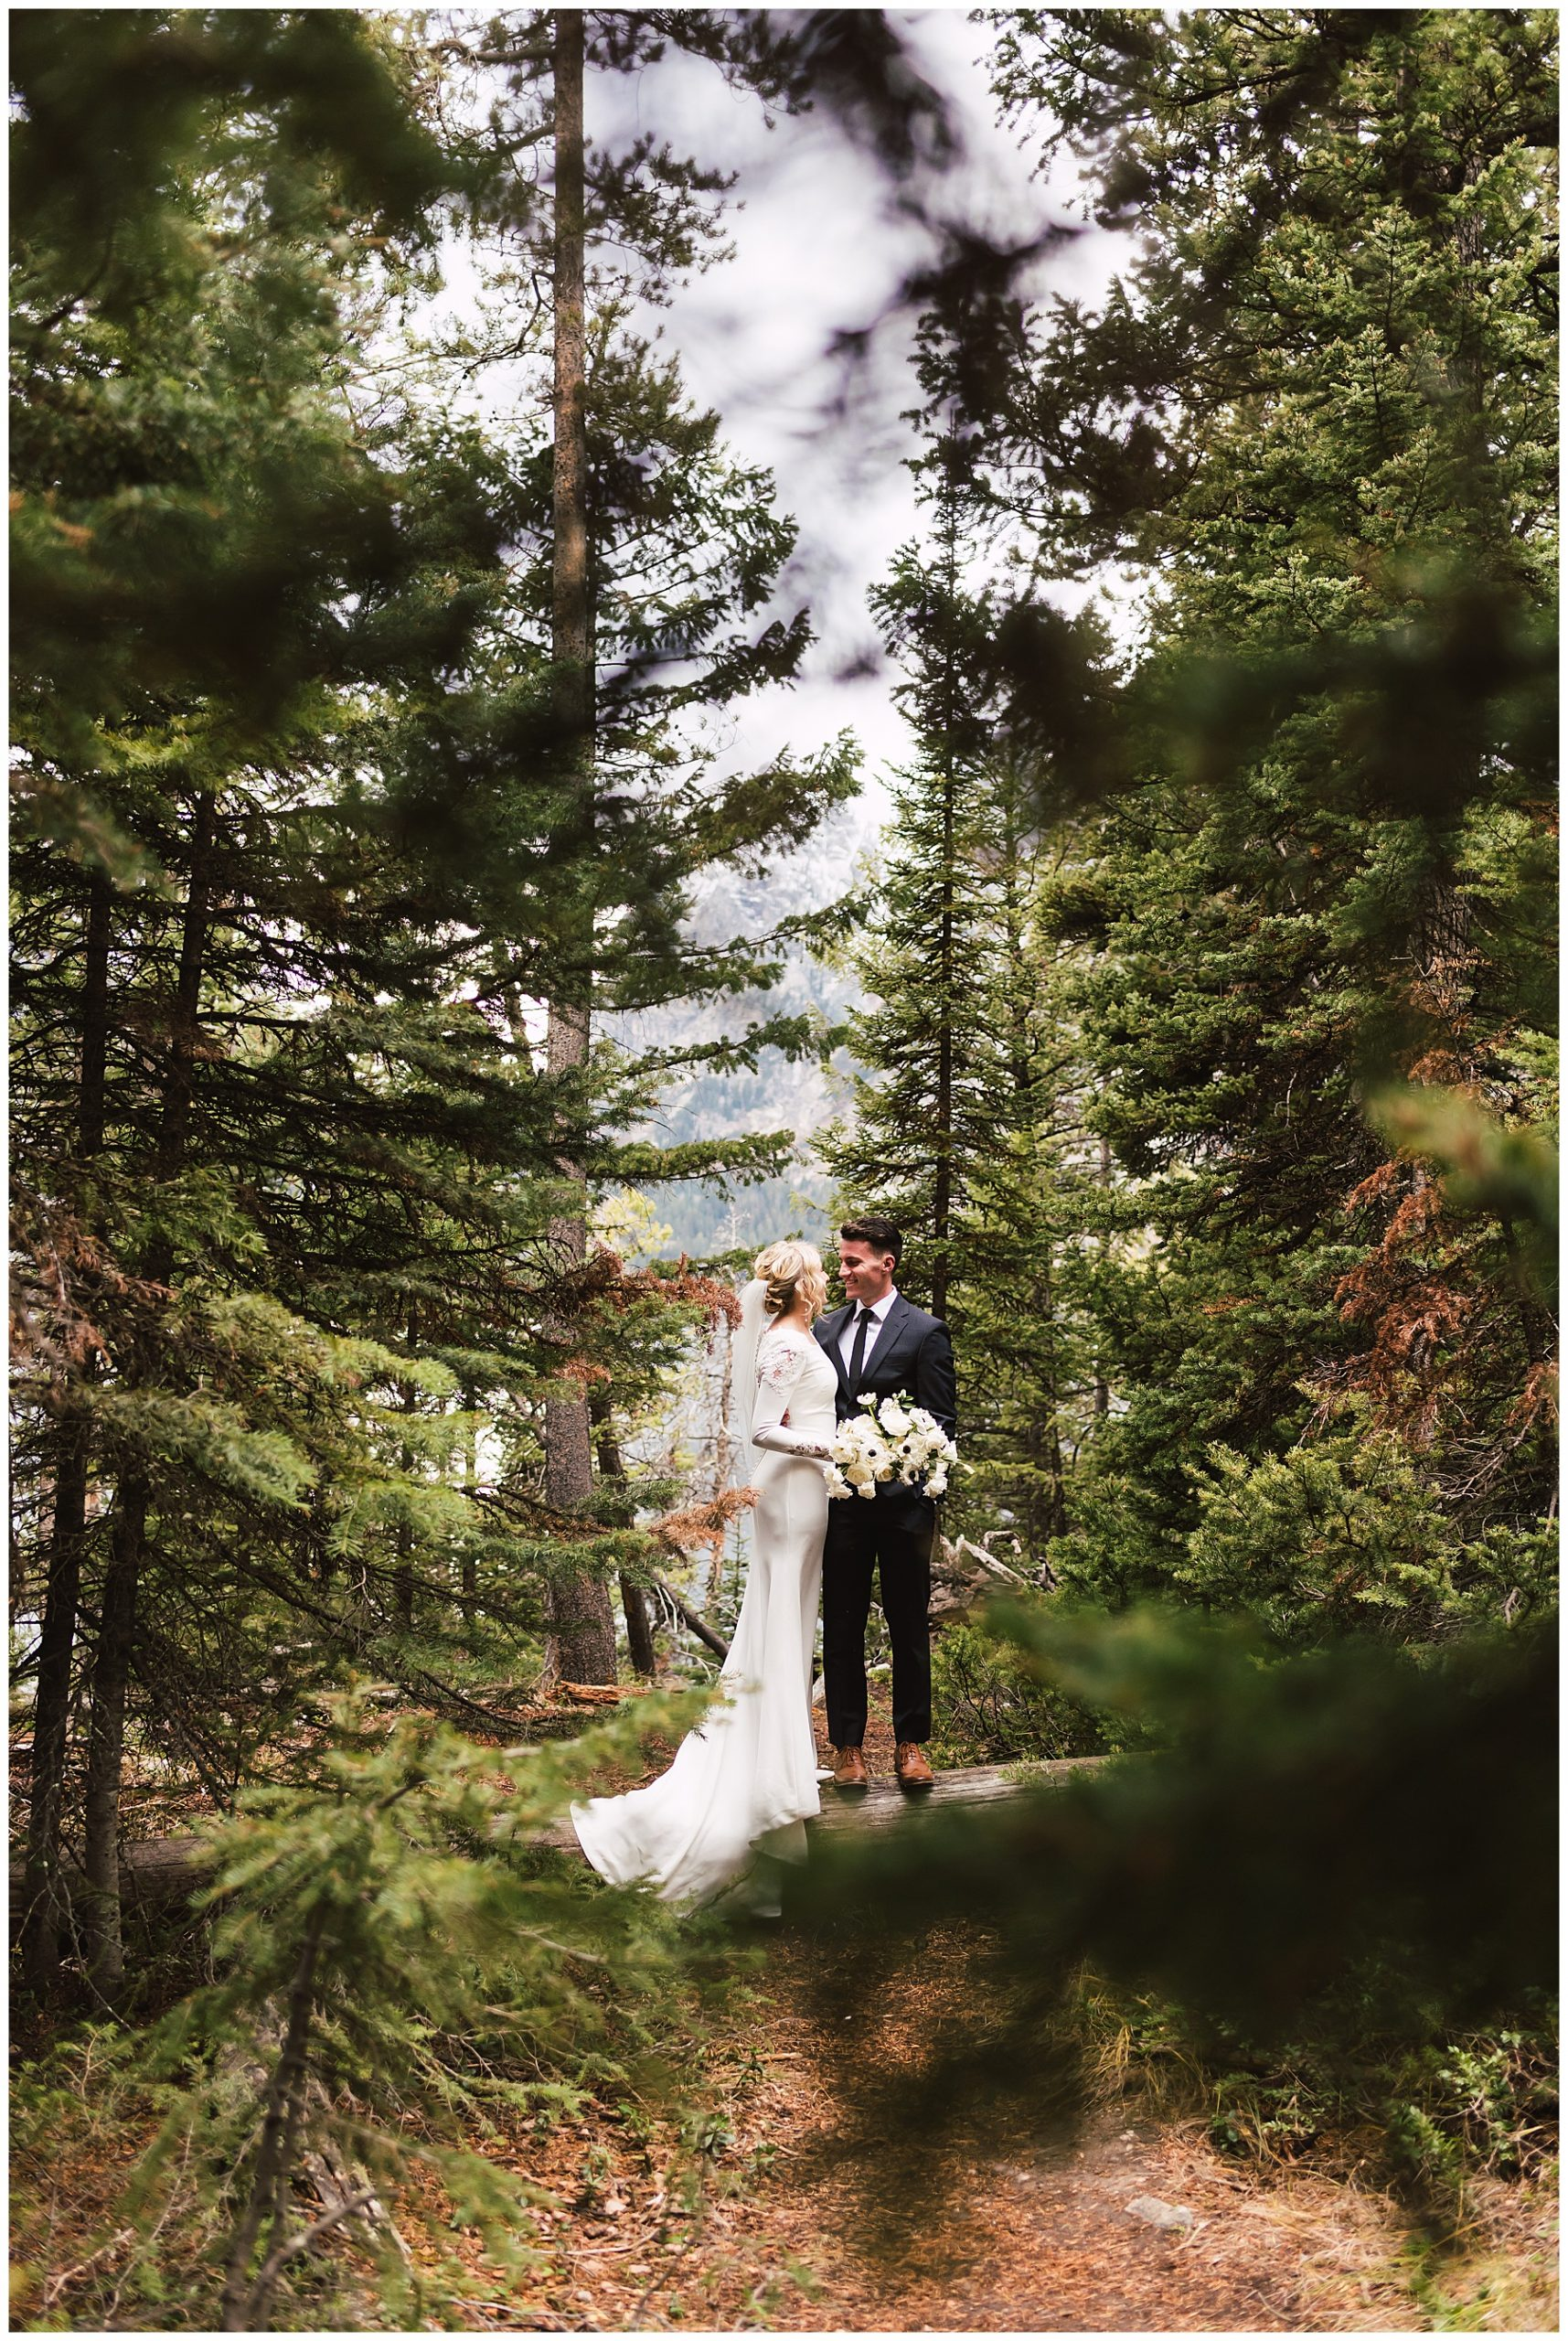 Utah Wedding Photographer captures a couple in wedding attire, framed by pine trees